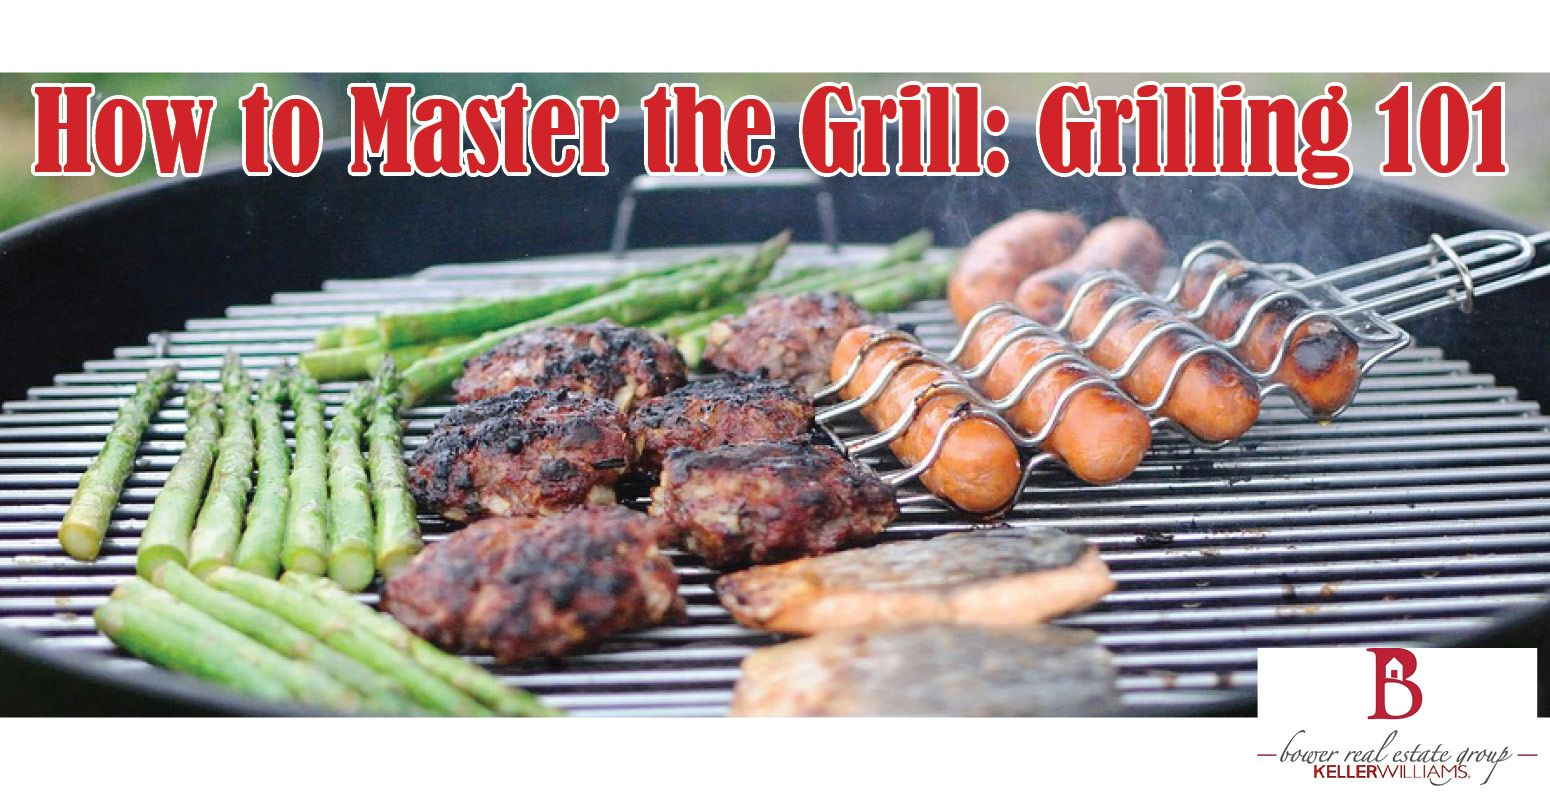 Spring is here, and it's time for grilling season to commence. Click here to learn not only how to take care of your grill this season, but also for some delicious recipes to try out. #Grill #Grilling #HowTo #Clean #Recipe #Recipes #Outdoors #Camping #Summer #Spring #BBQ #Barbecue #101 #Cook #Cooking